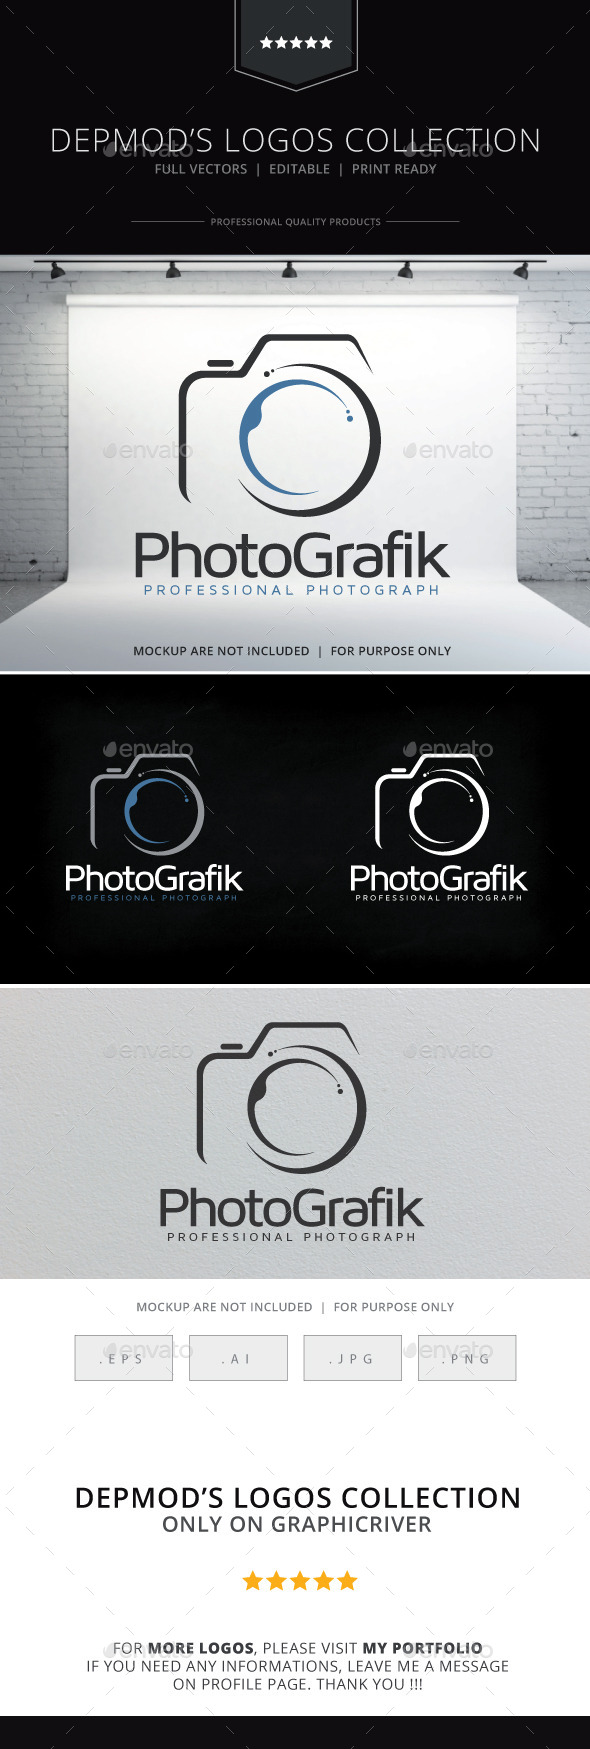 GraphicRiver Photografik Logo 9213061